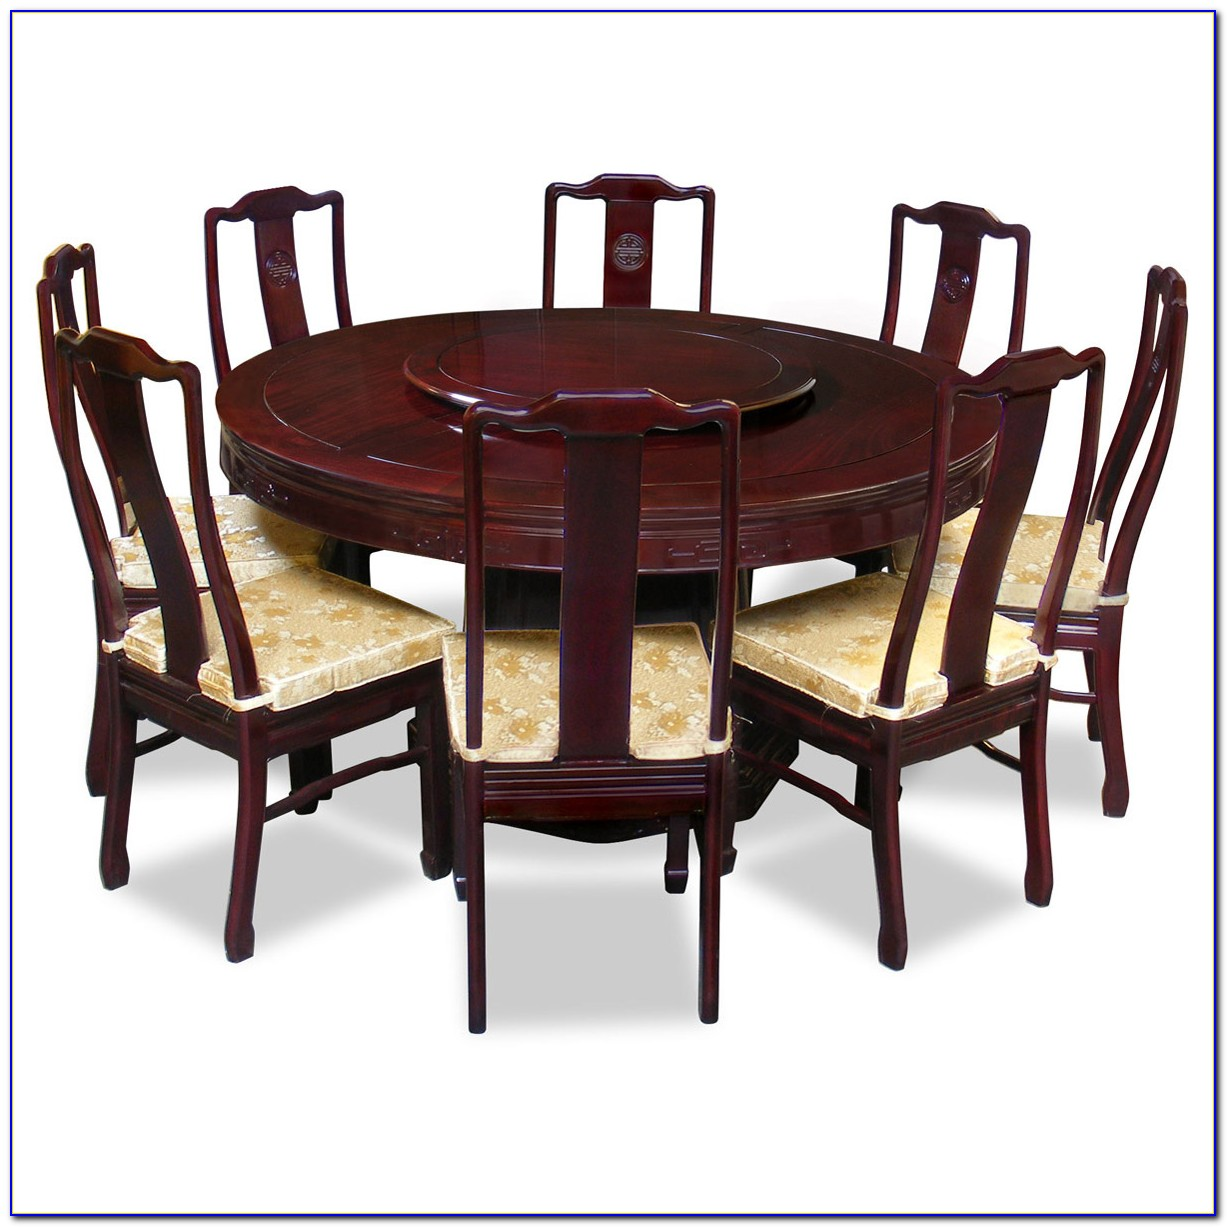 Round Dining Table And Chairs For 8